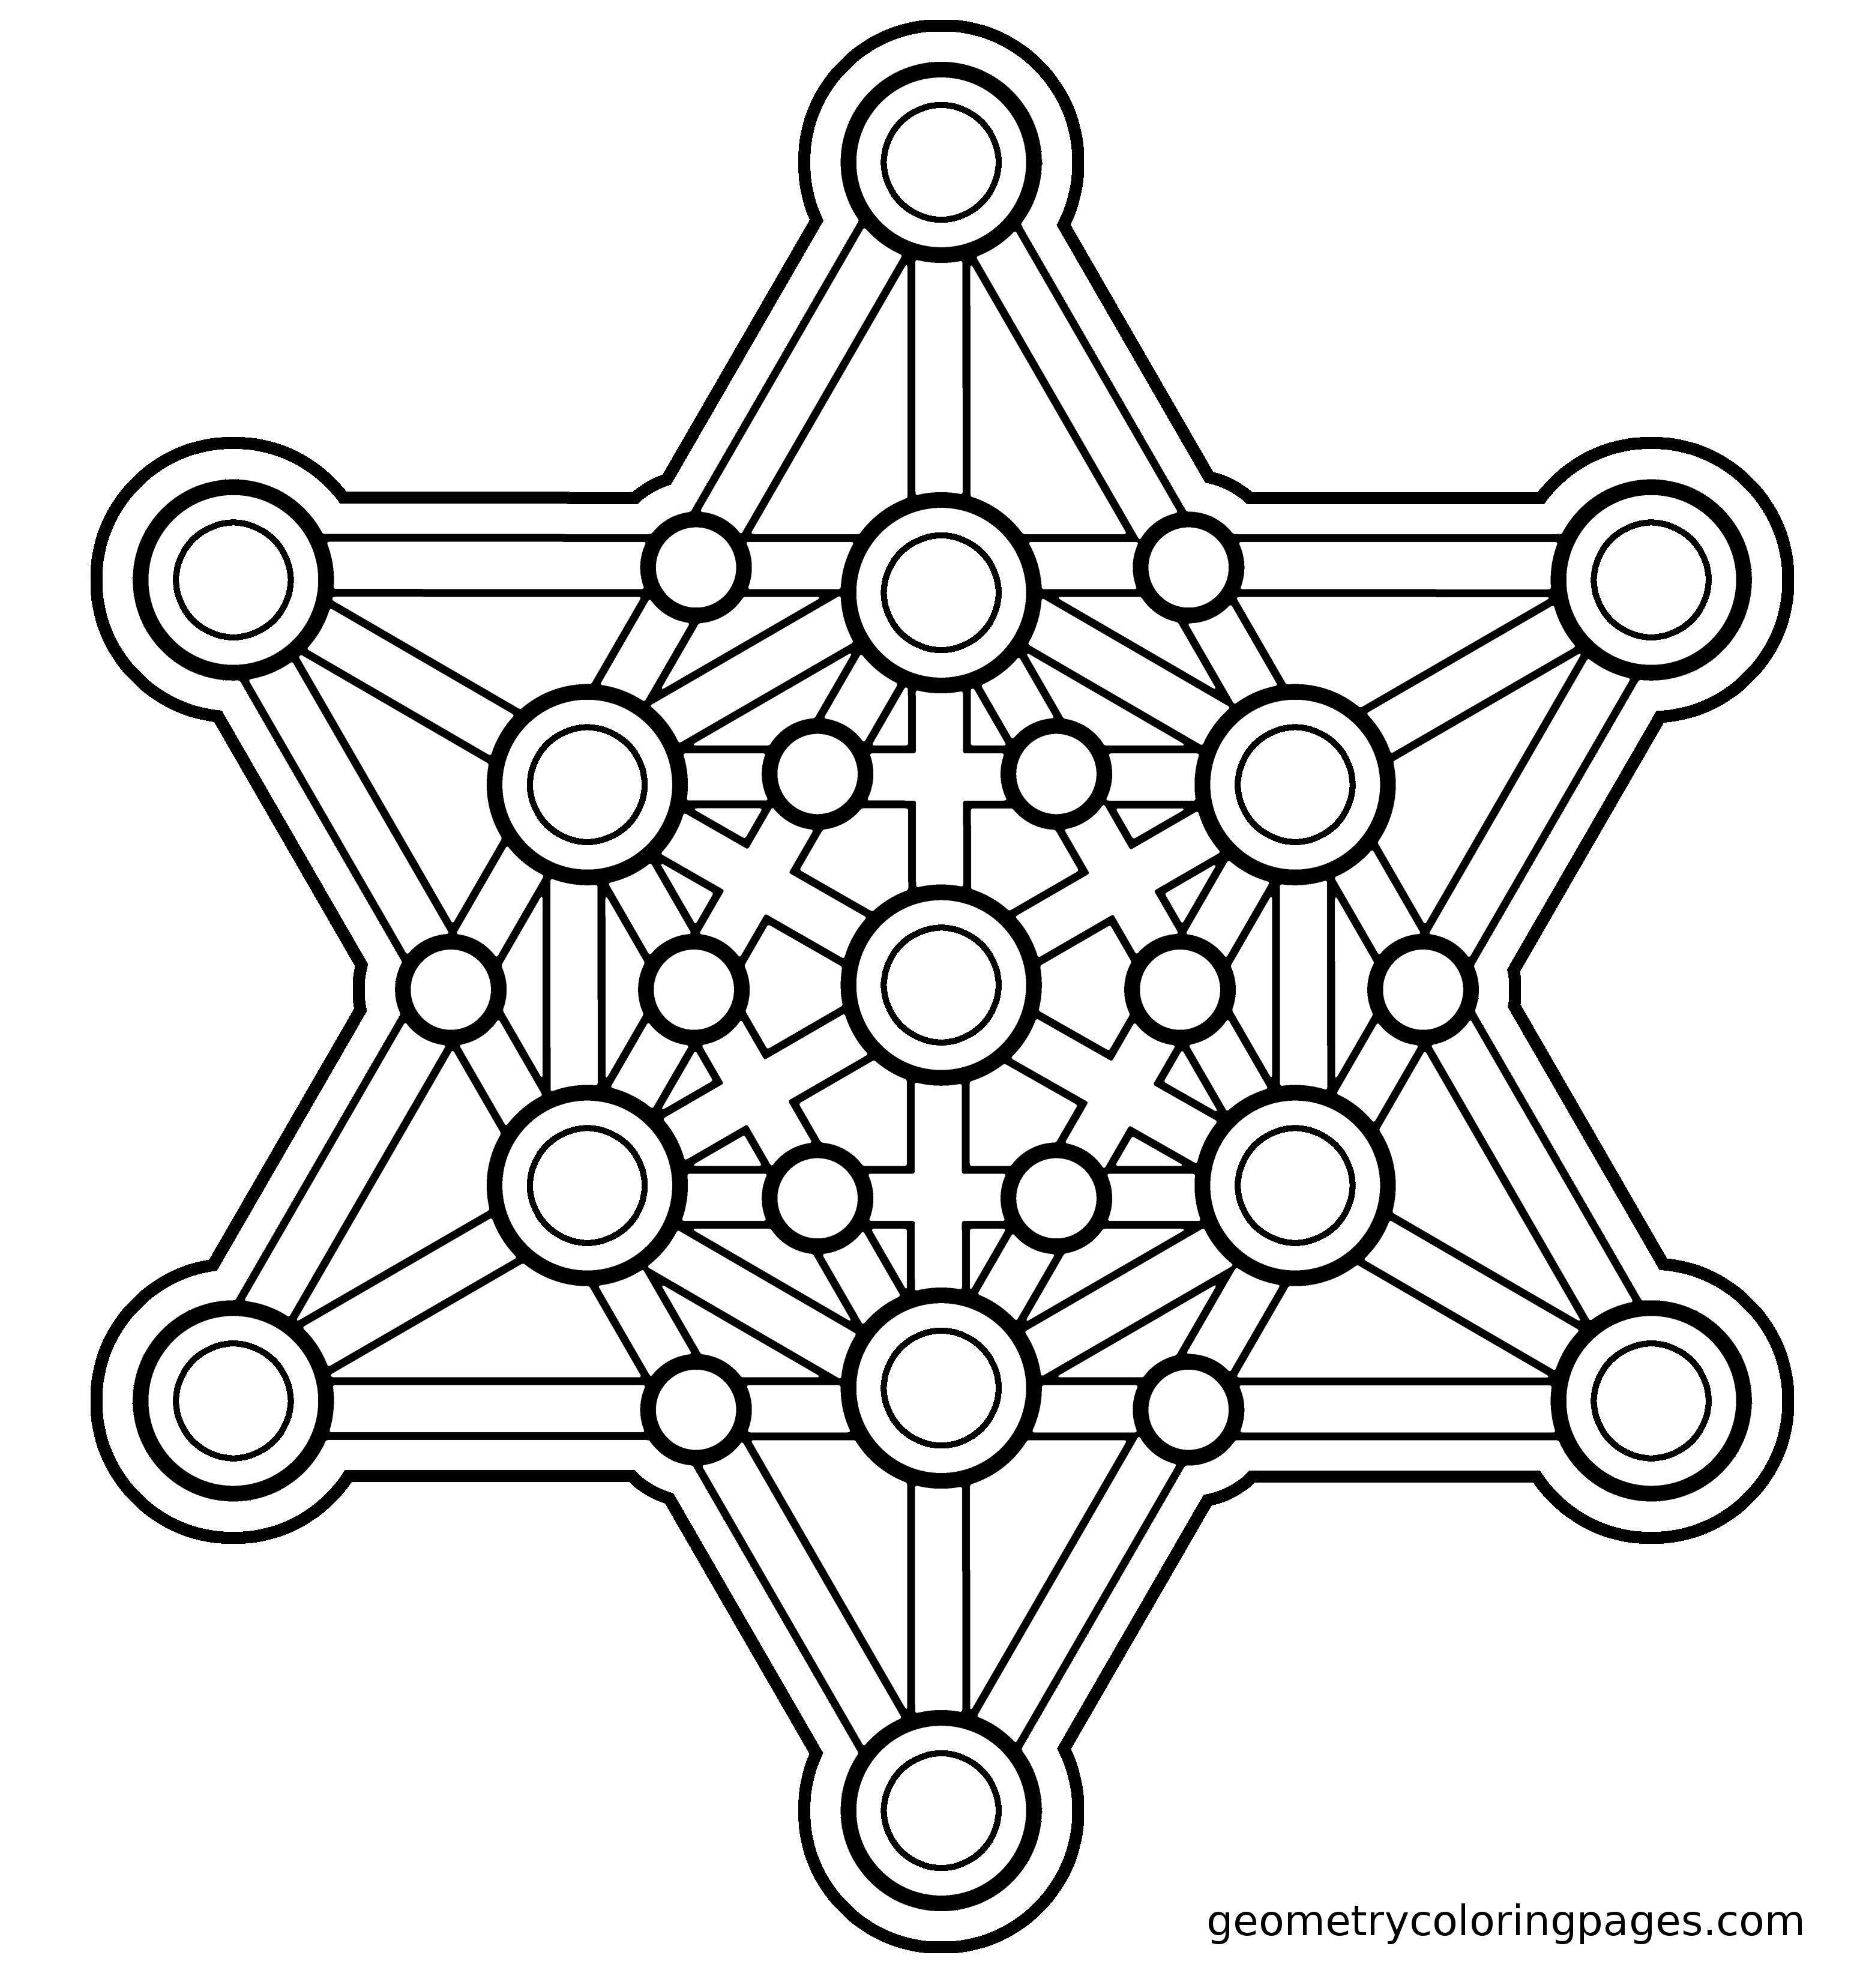 Merkaba Redux Mandala Coloring Pages Sacred Geometry Coloring Pages